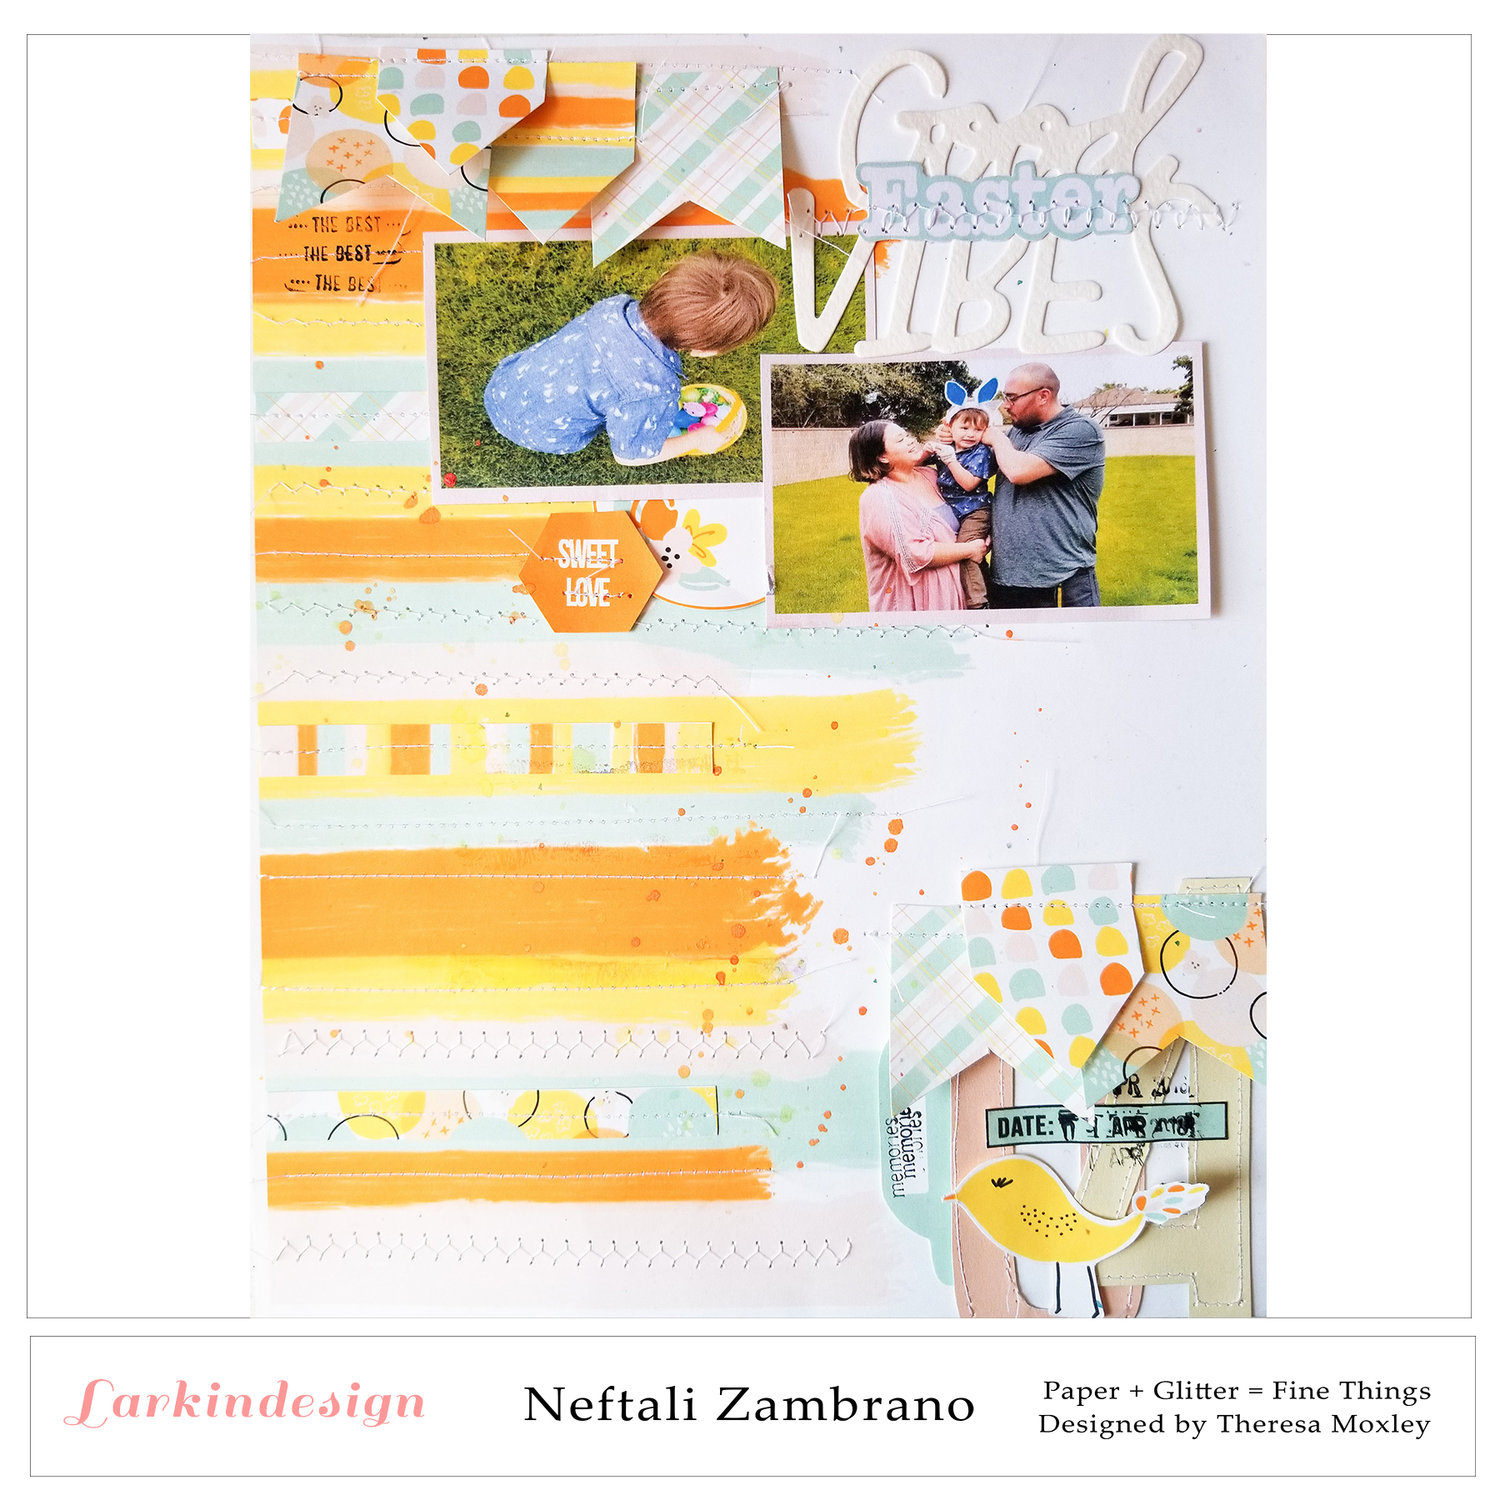 Larkindesign Photo Templates | Creative Team Member Neftali Zambrano